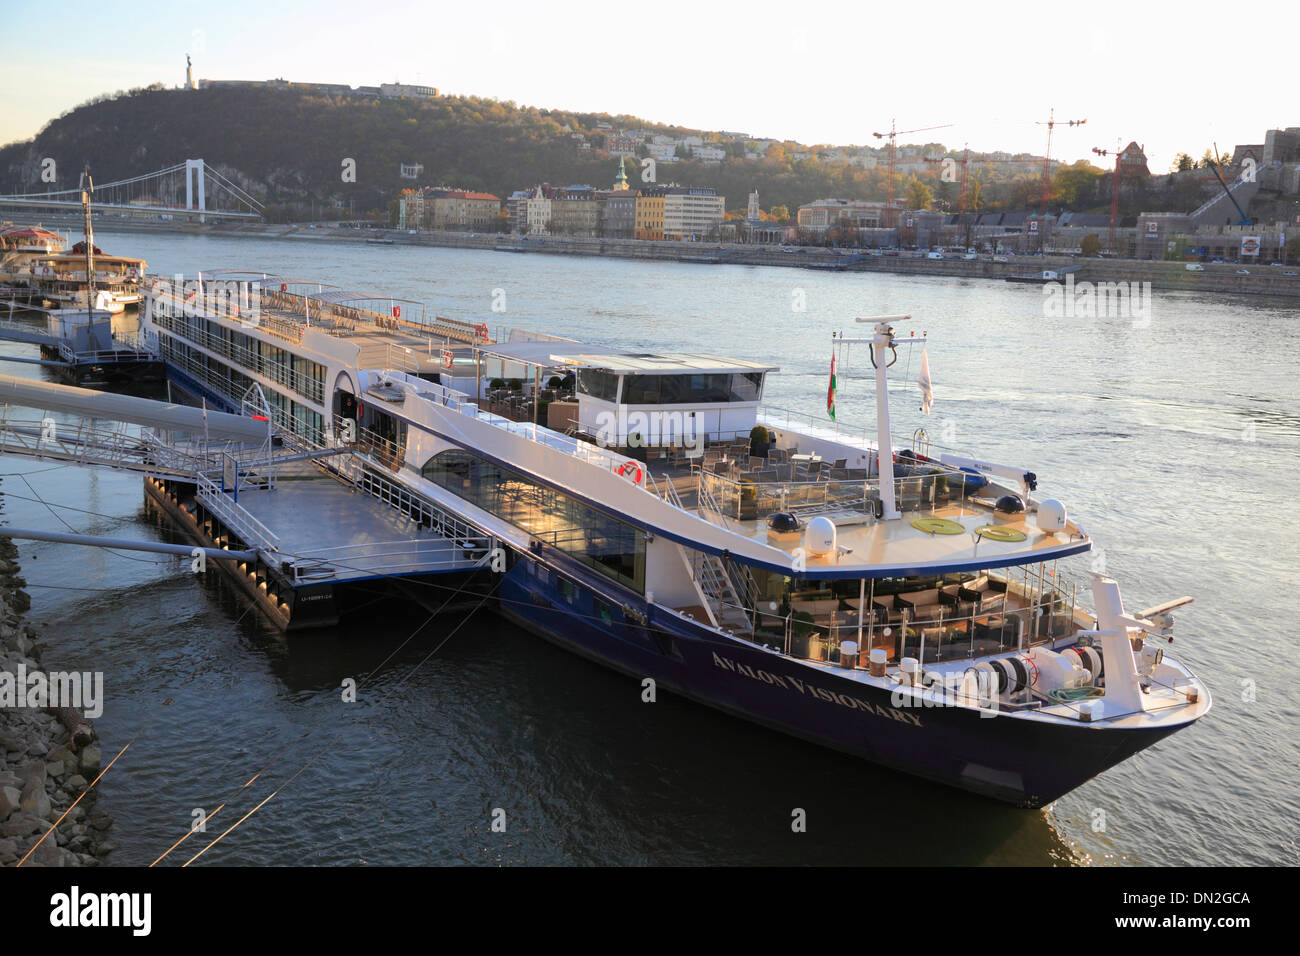 Danube River Cruise Ships a River Cruise Ship Moored on